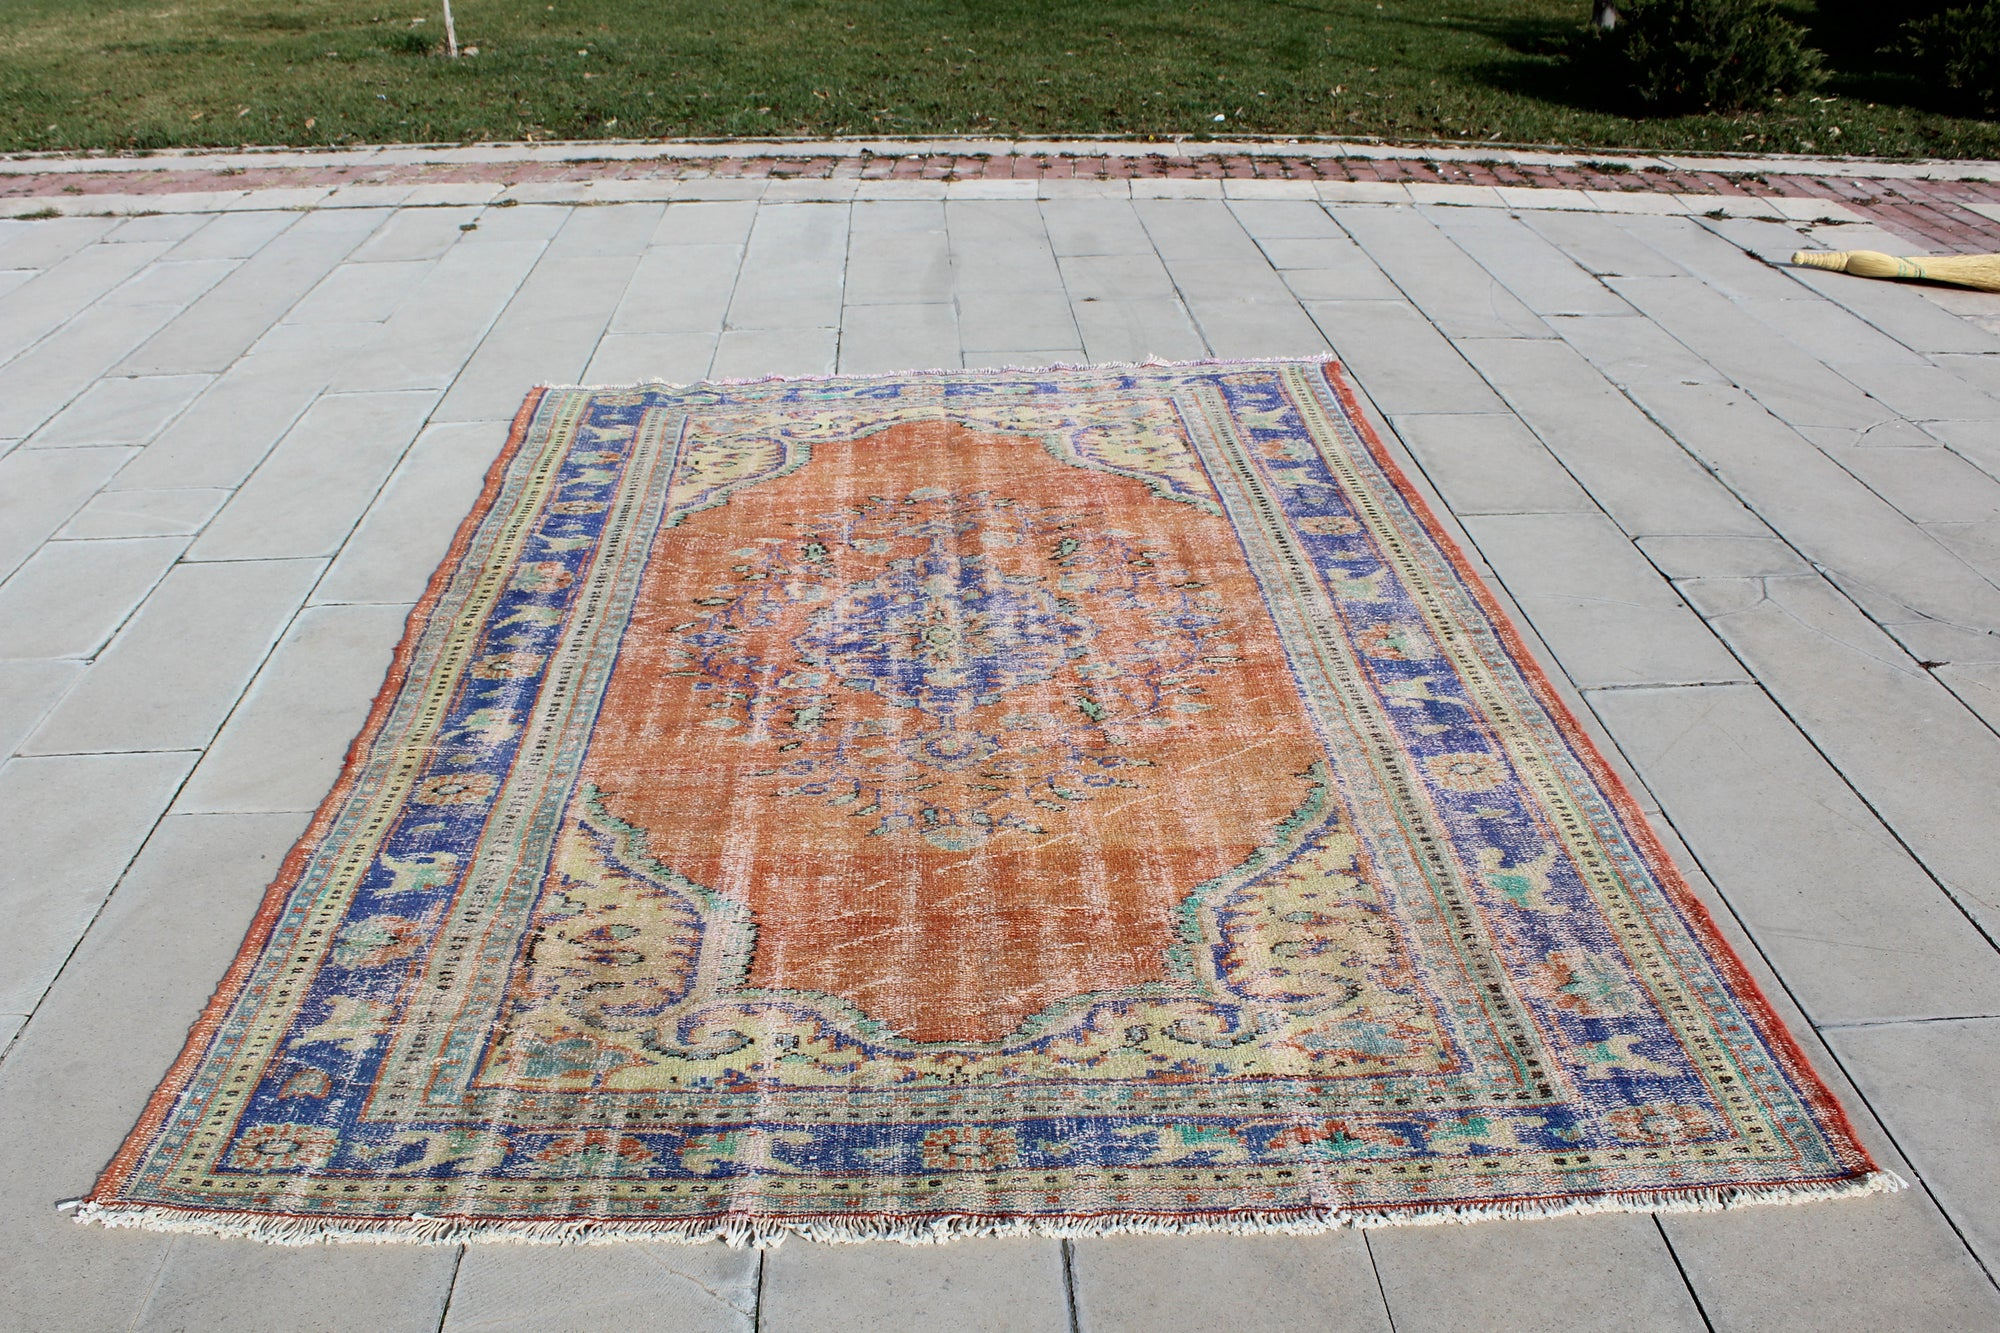 Turkey Rug, Turkish Oushak Rug, Handwoven Boho Blue Rug, Traditional Antique Oriental , 6 x 8.6  Feet AG969